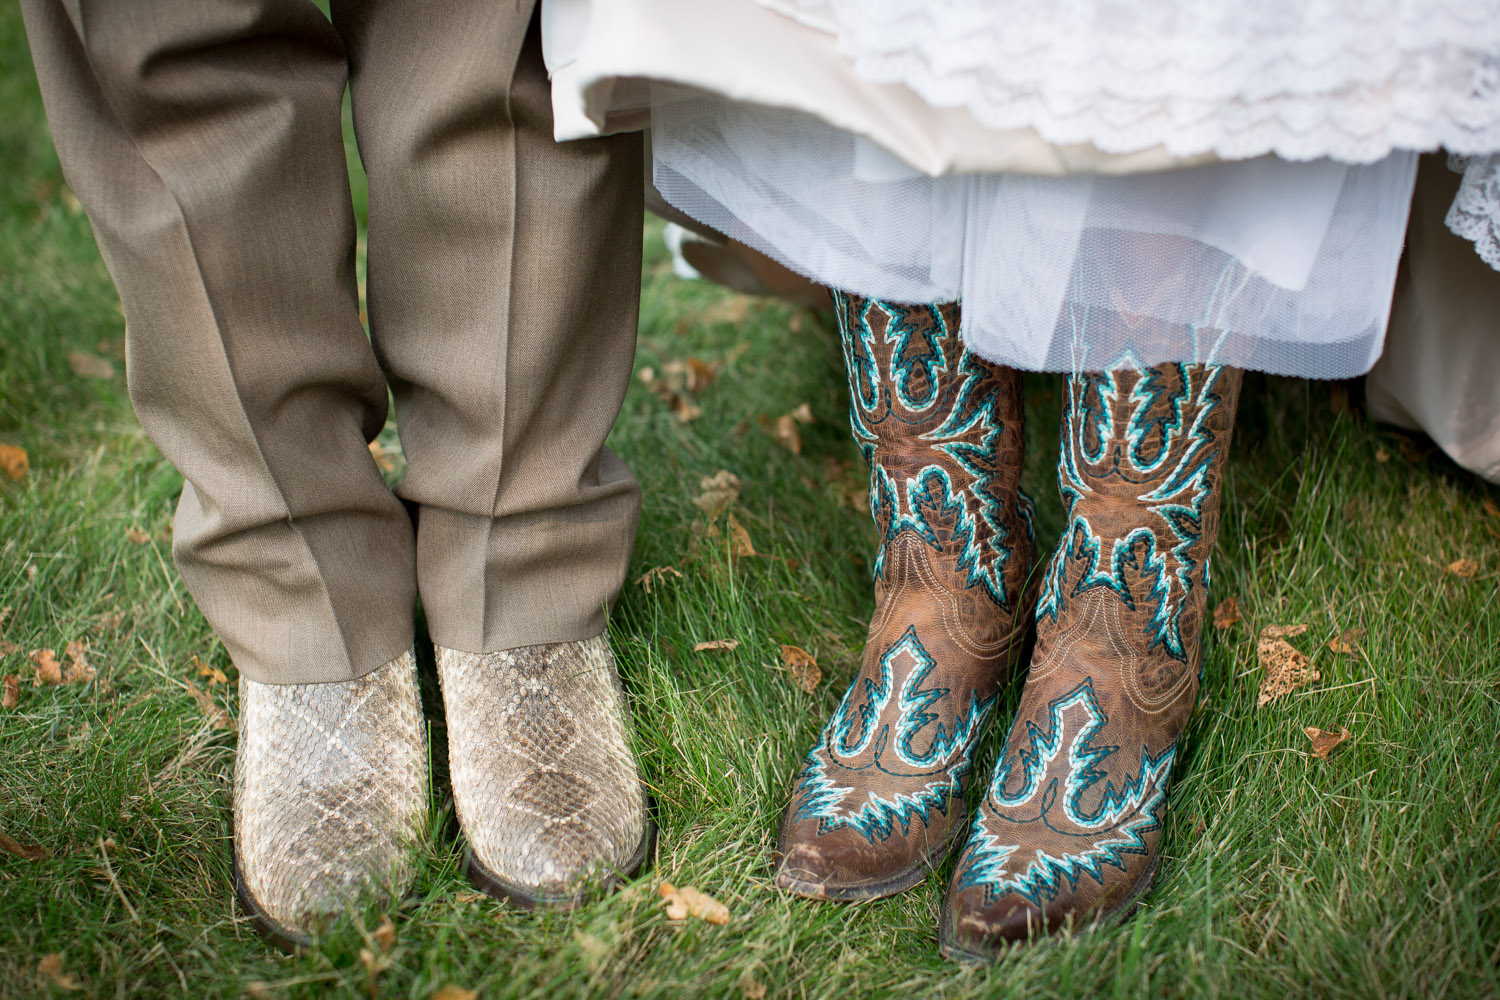 24-dellwood-barn-weddings-minnesota-wedding-photographer-outdoor-summer-bride-and-groom-photos-cowboy-boots-detail-mahonen-photography.jpg